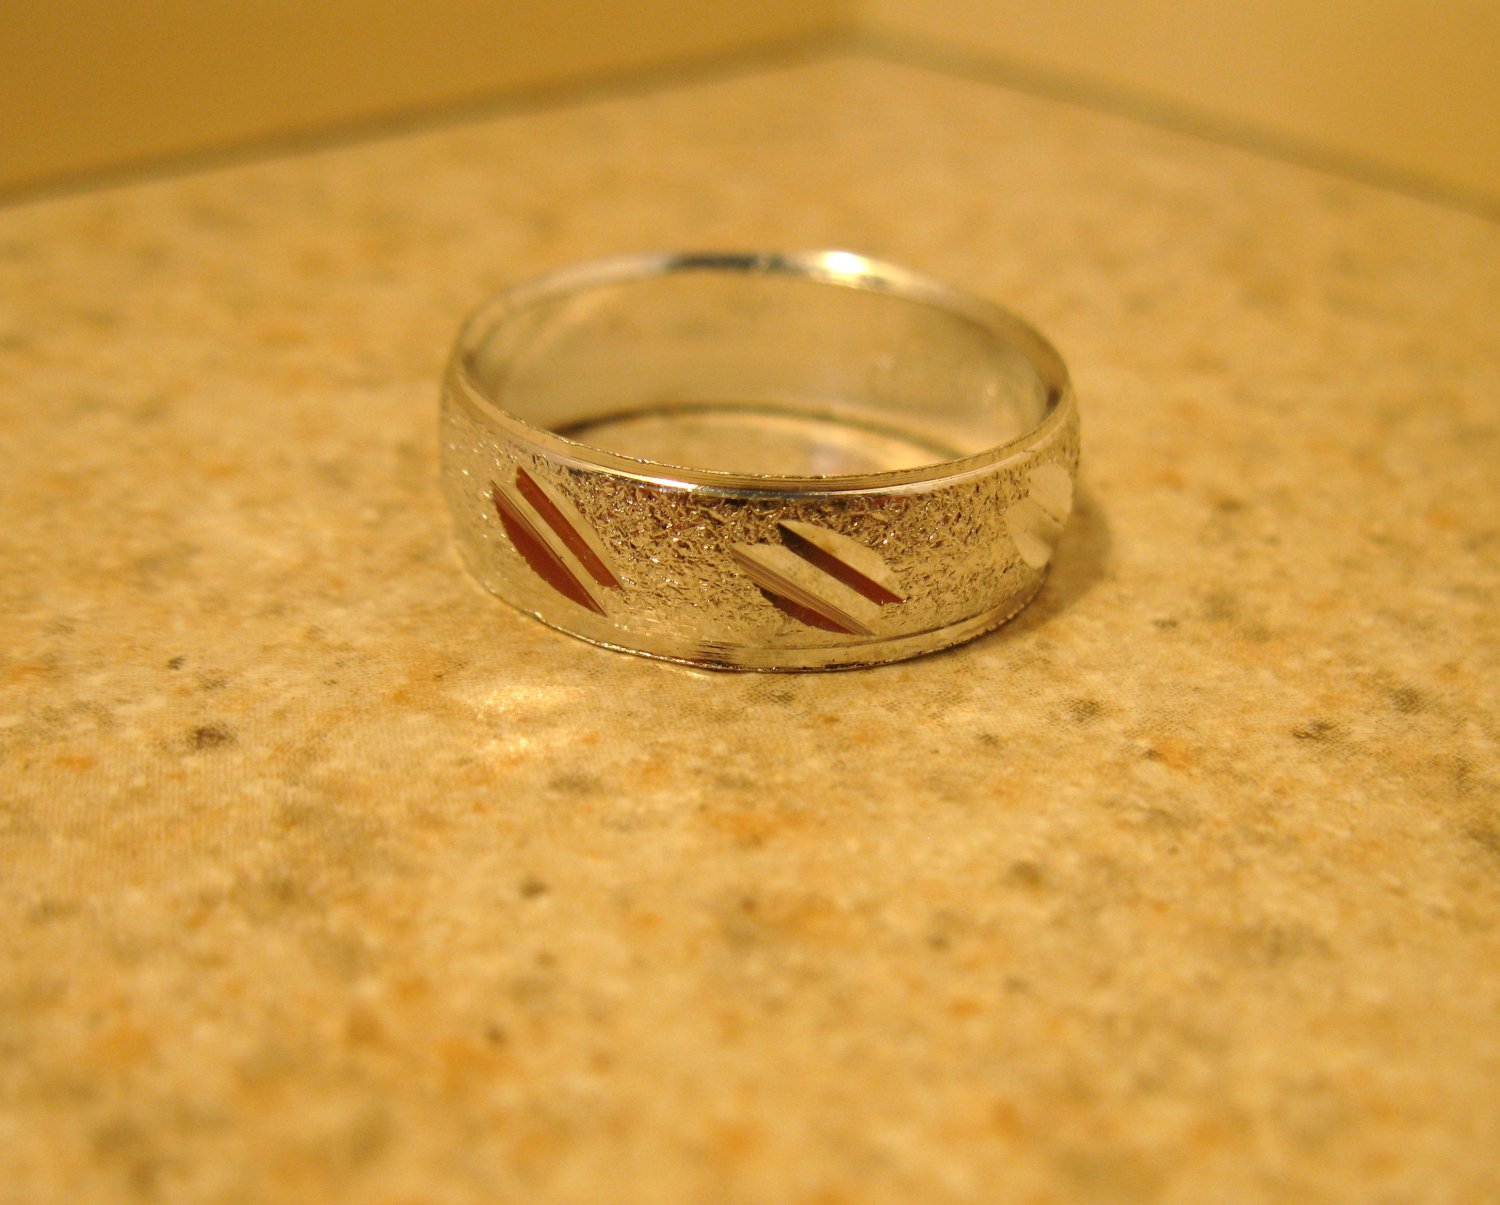 Silver Plated Double Notched Design Aluminum Ring Unisex Size 7.5 New! #982